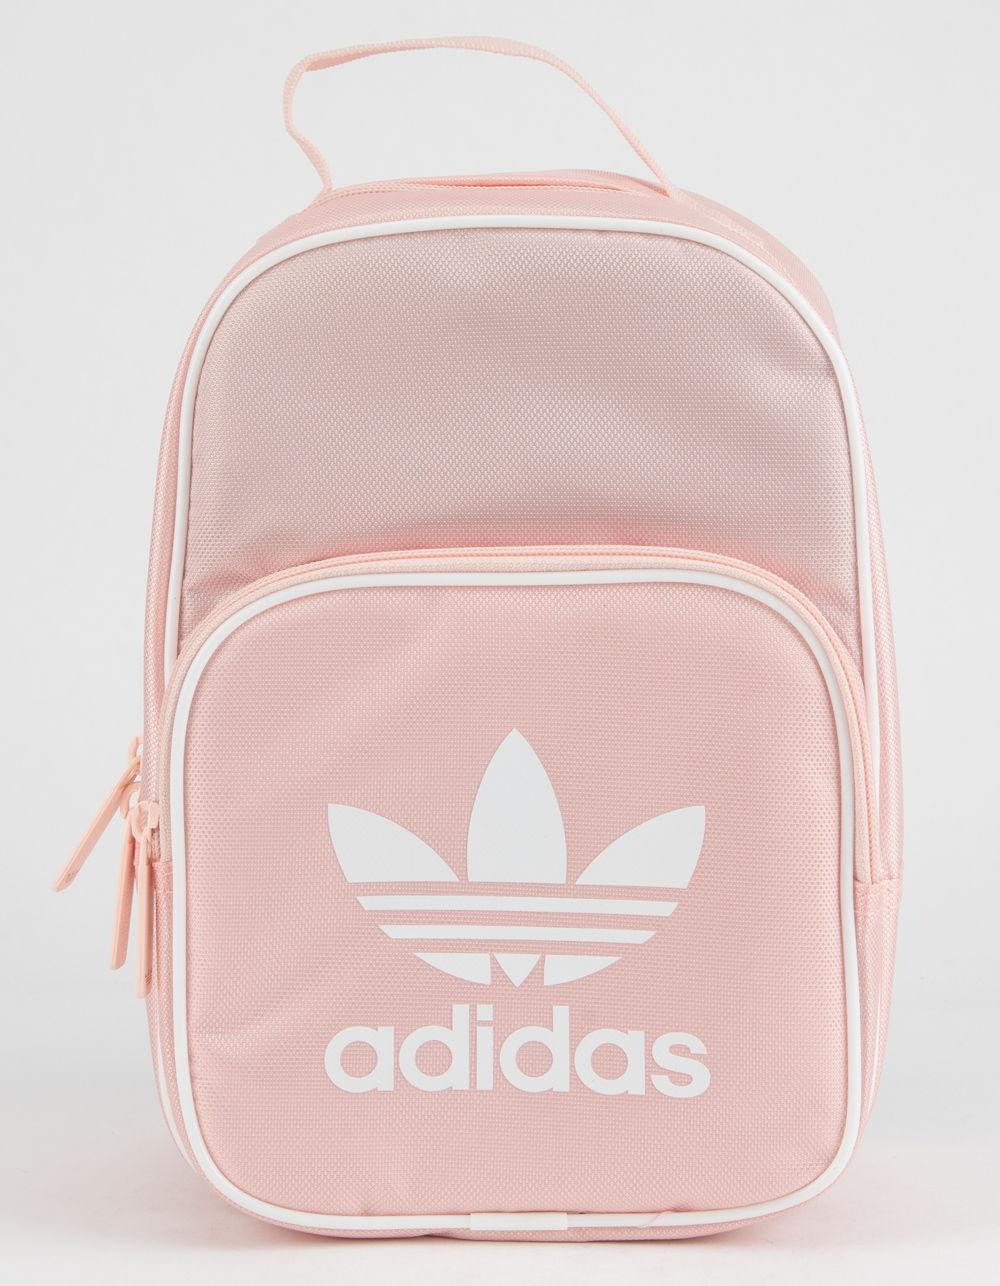 a8f70f944e Adidas Backpack For Men    New And Popular 2017 - YouTube